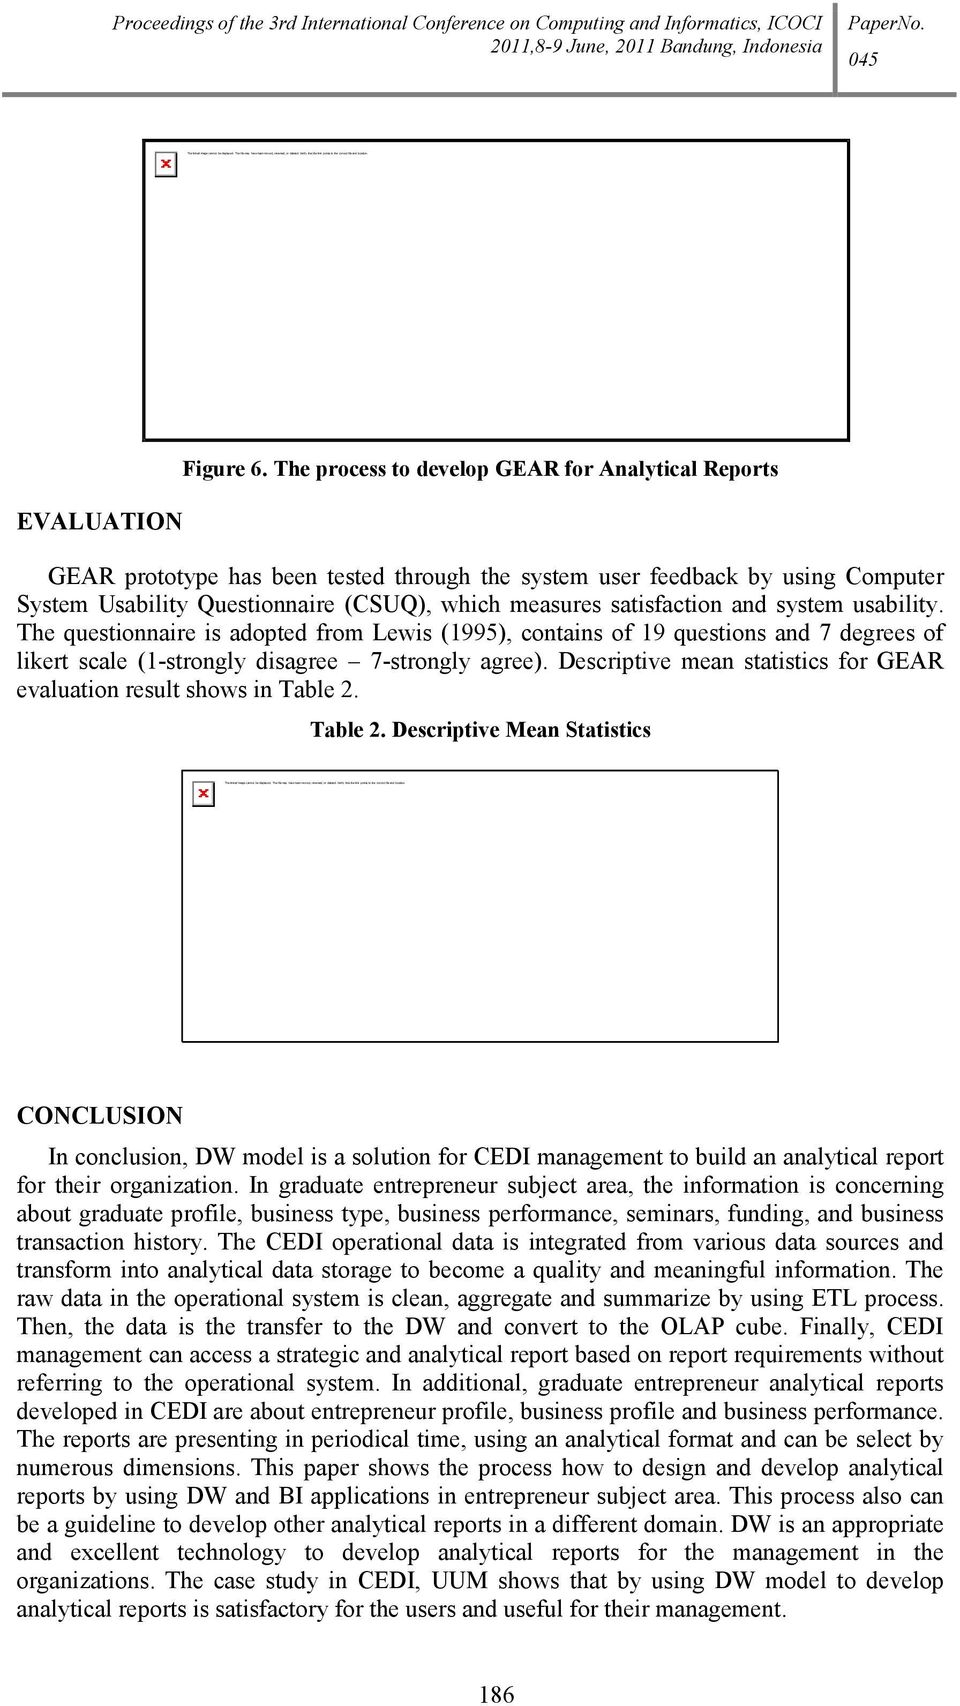 Proceedings of the 3rd International Conference on Computing and Informatics, ICOCI EVALUATION Figure 6.